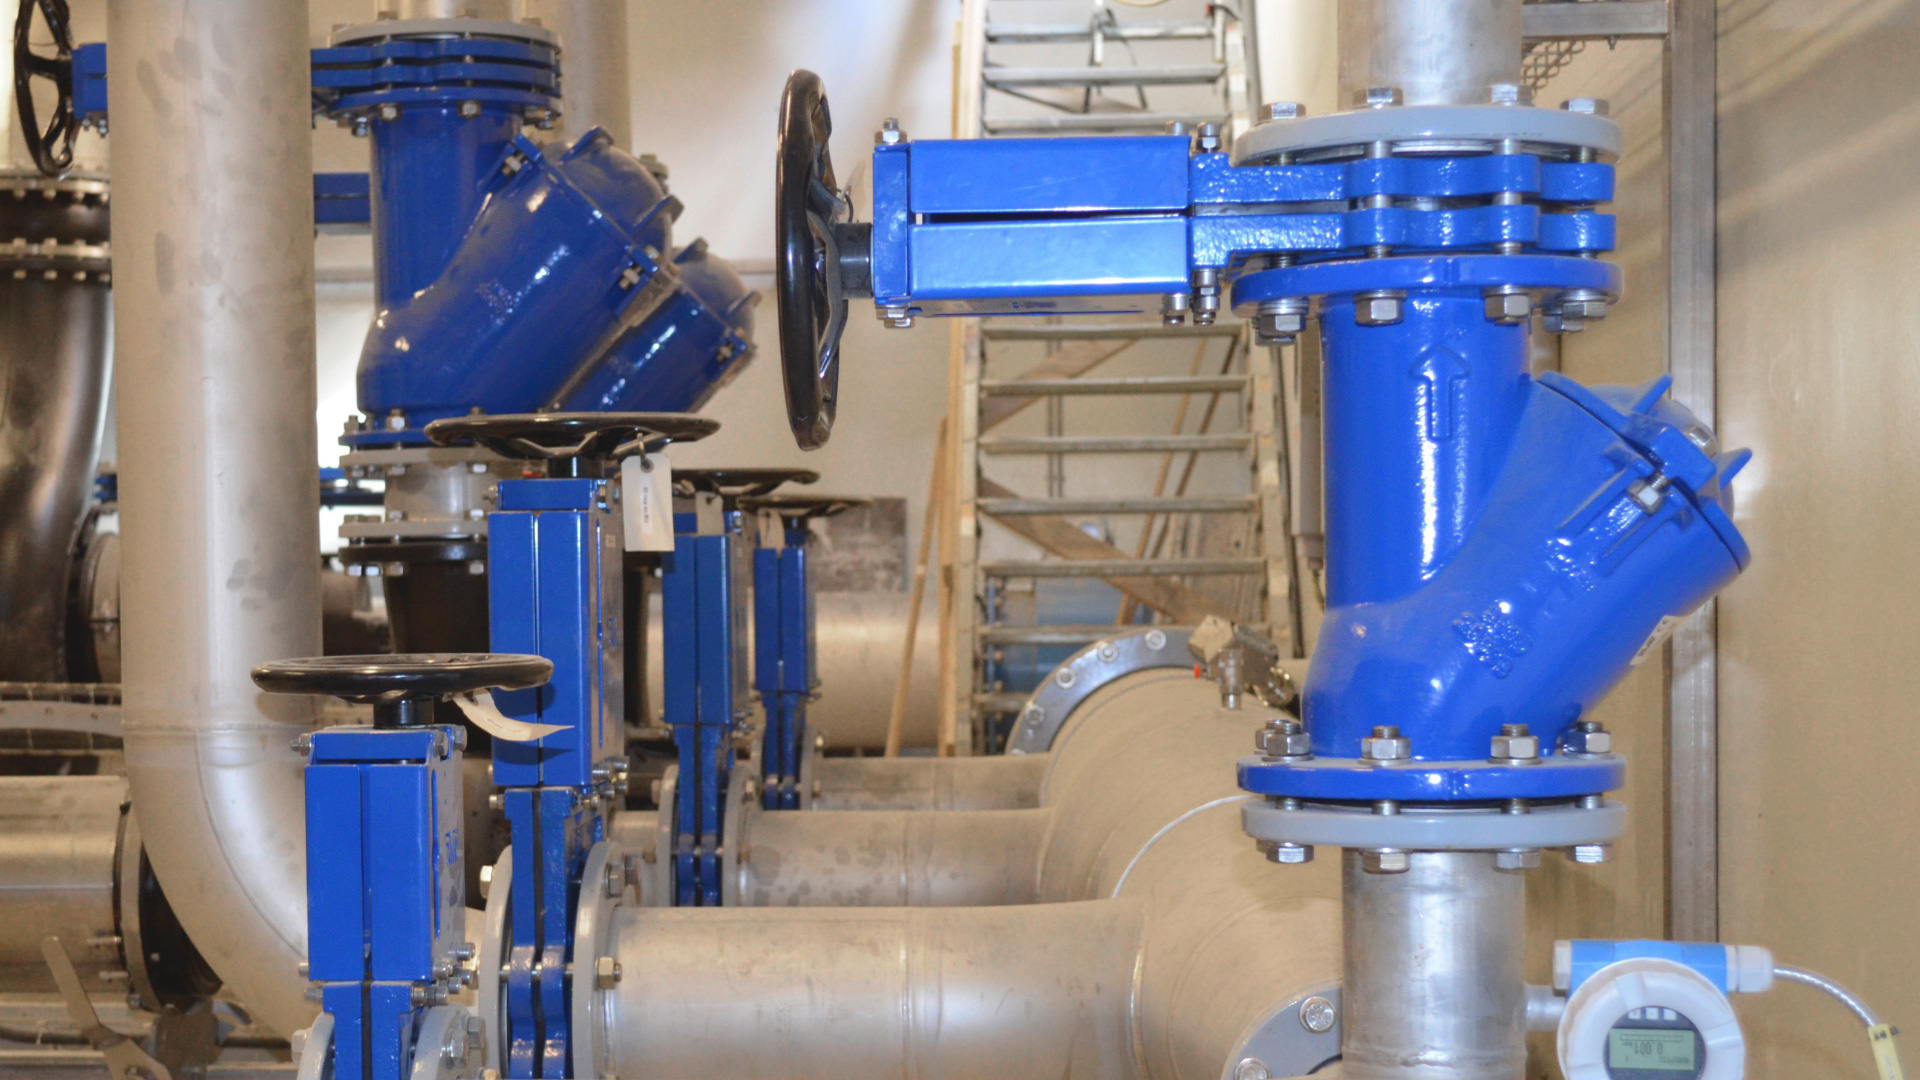 Ball check valves installed in Mariager